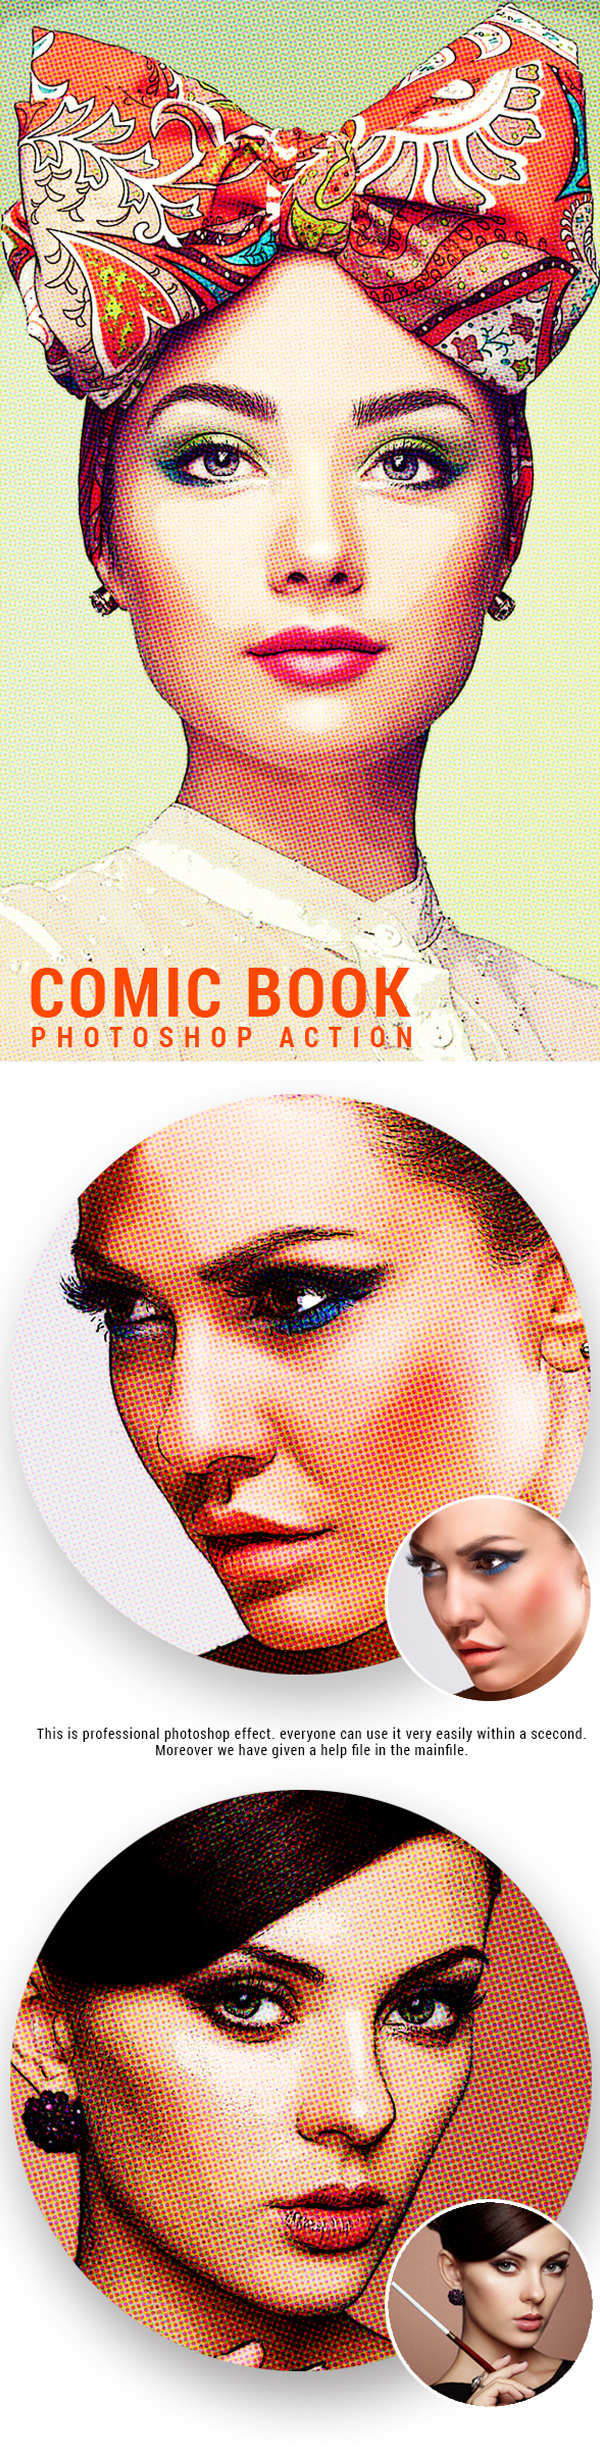 Comic Book Photoshop Action